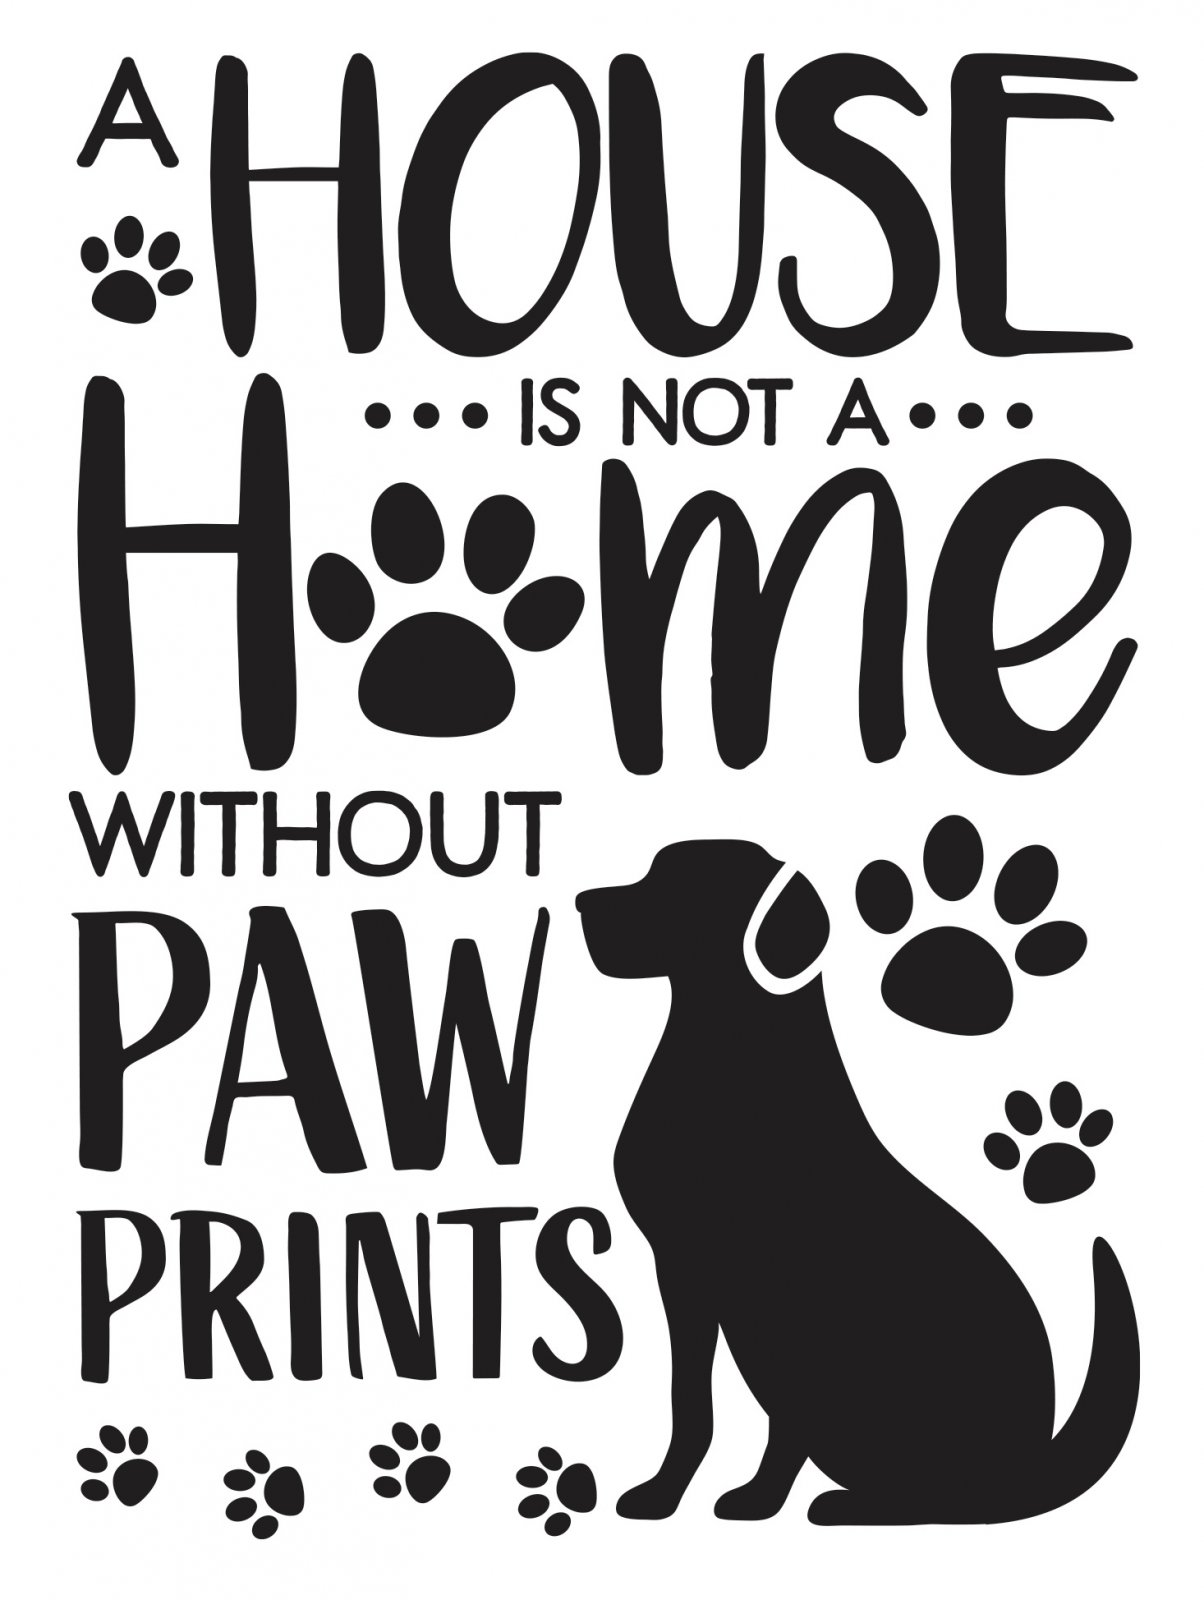 Dog House Embossing Folder, 4.25 x 5.75 inches